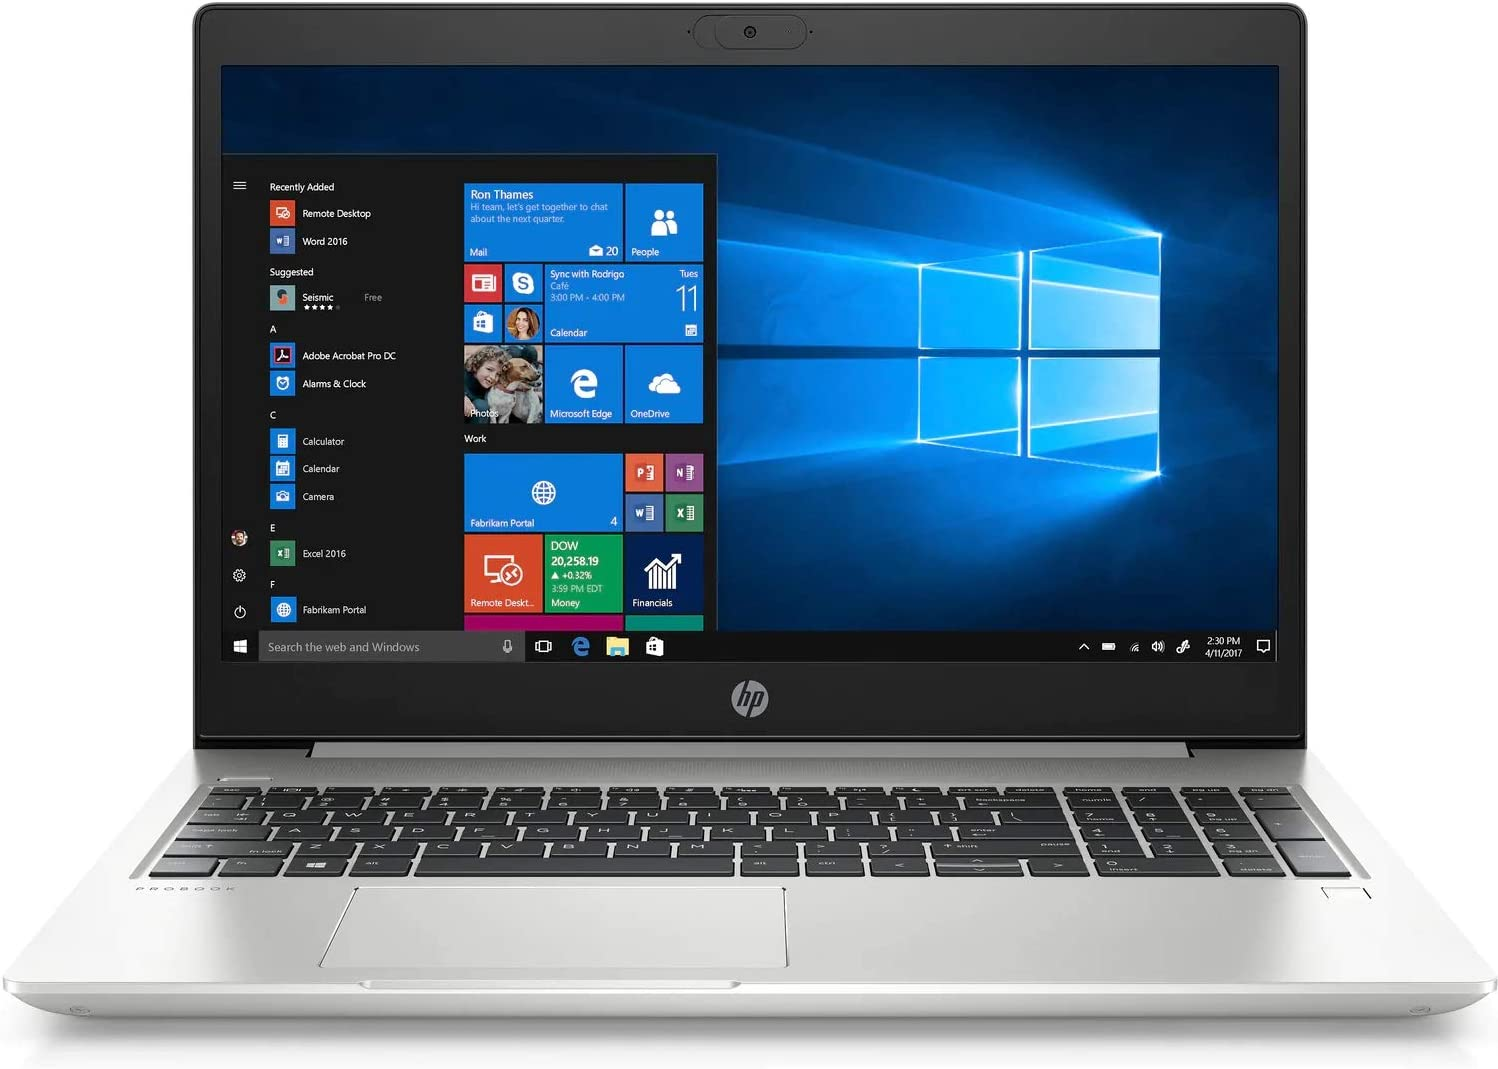 "HP ProBook 450 G7 15.6"" Notebook - 1366 x 768 - Core i5 i5-10210U - 4 GB RAM - 256 GB SSD - Pike Silver - Windows 10 Pro 64-bit - Intel UHD Graphics 620 - English Keyboard - Intel Optane Memory Ready"